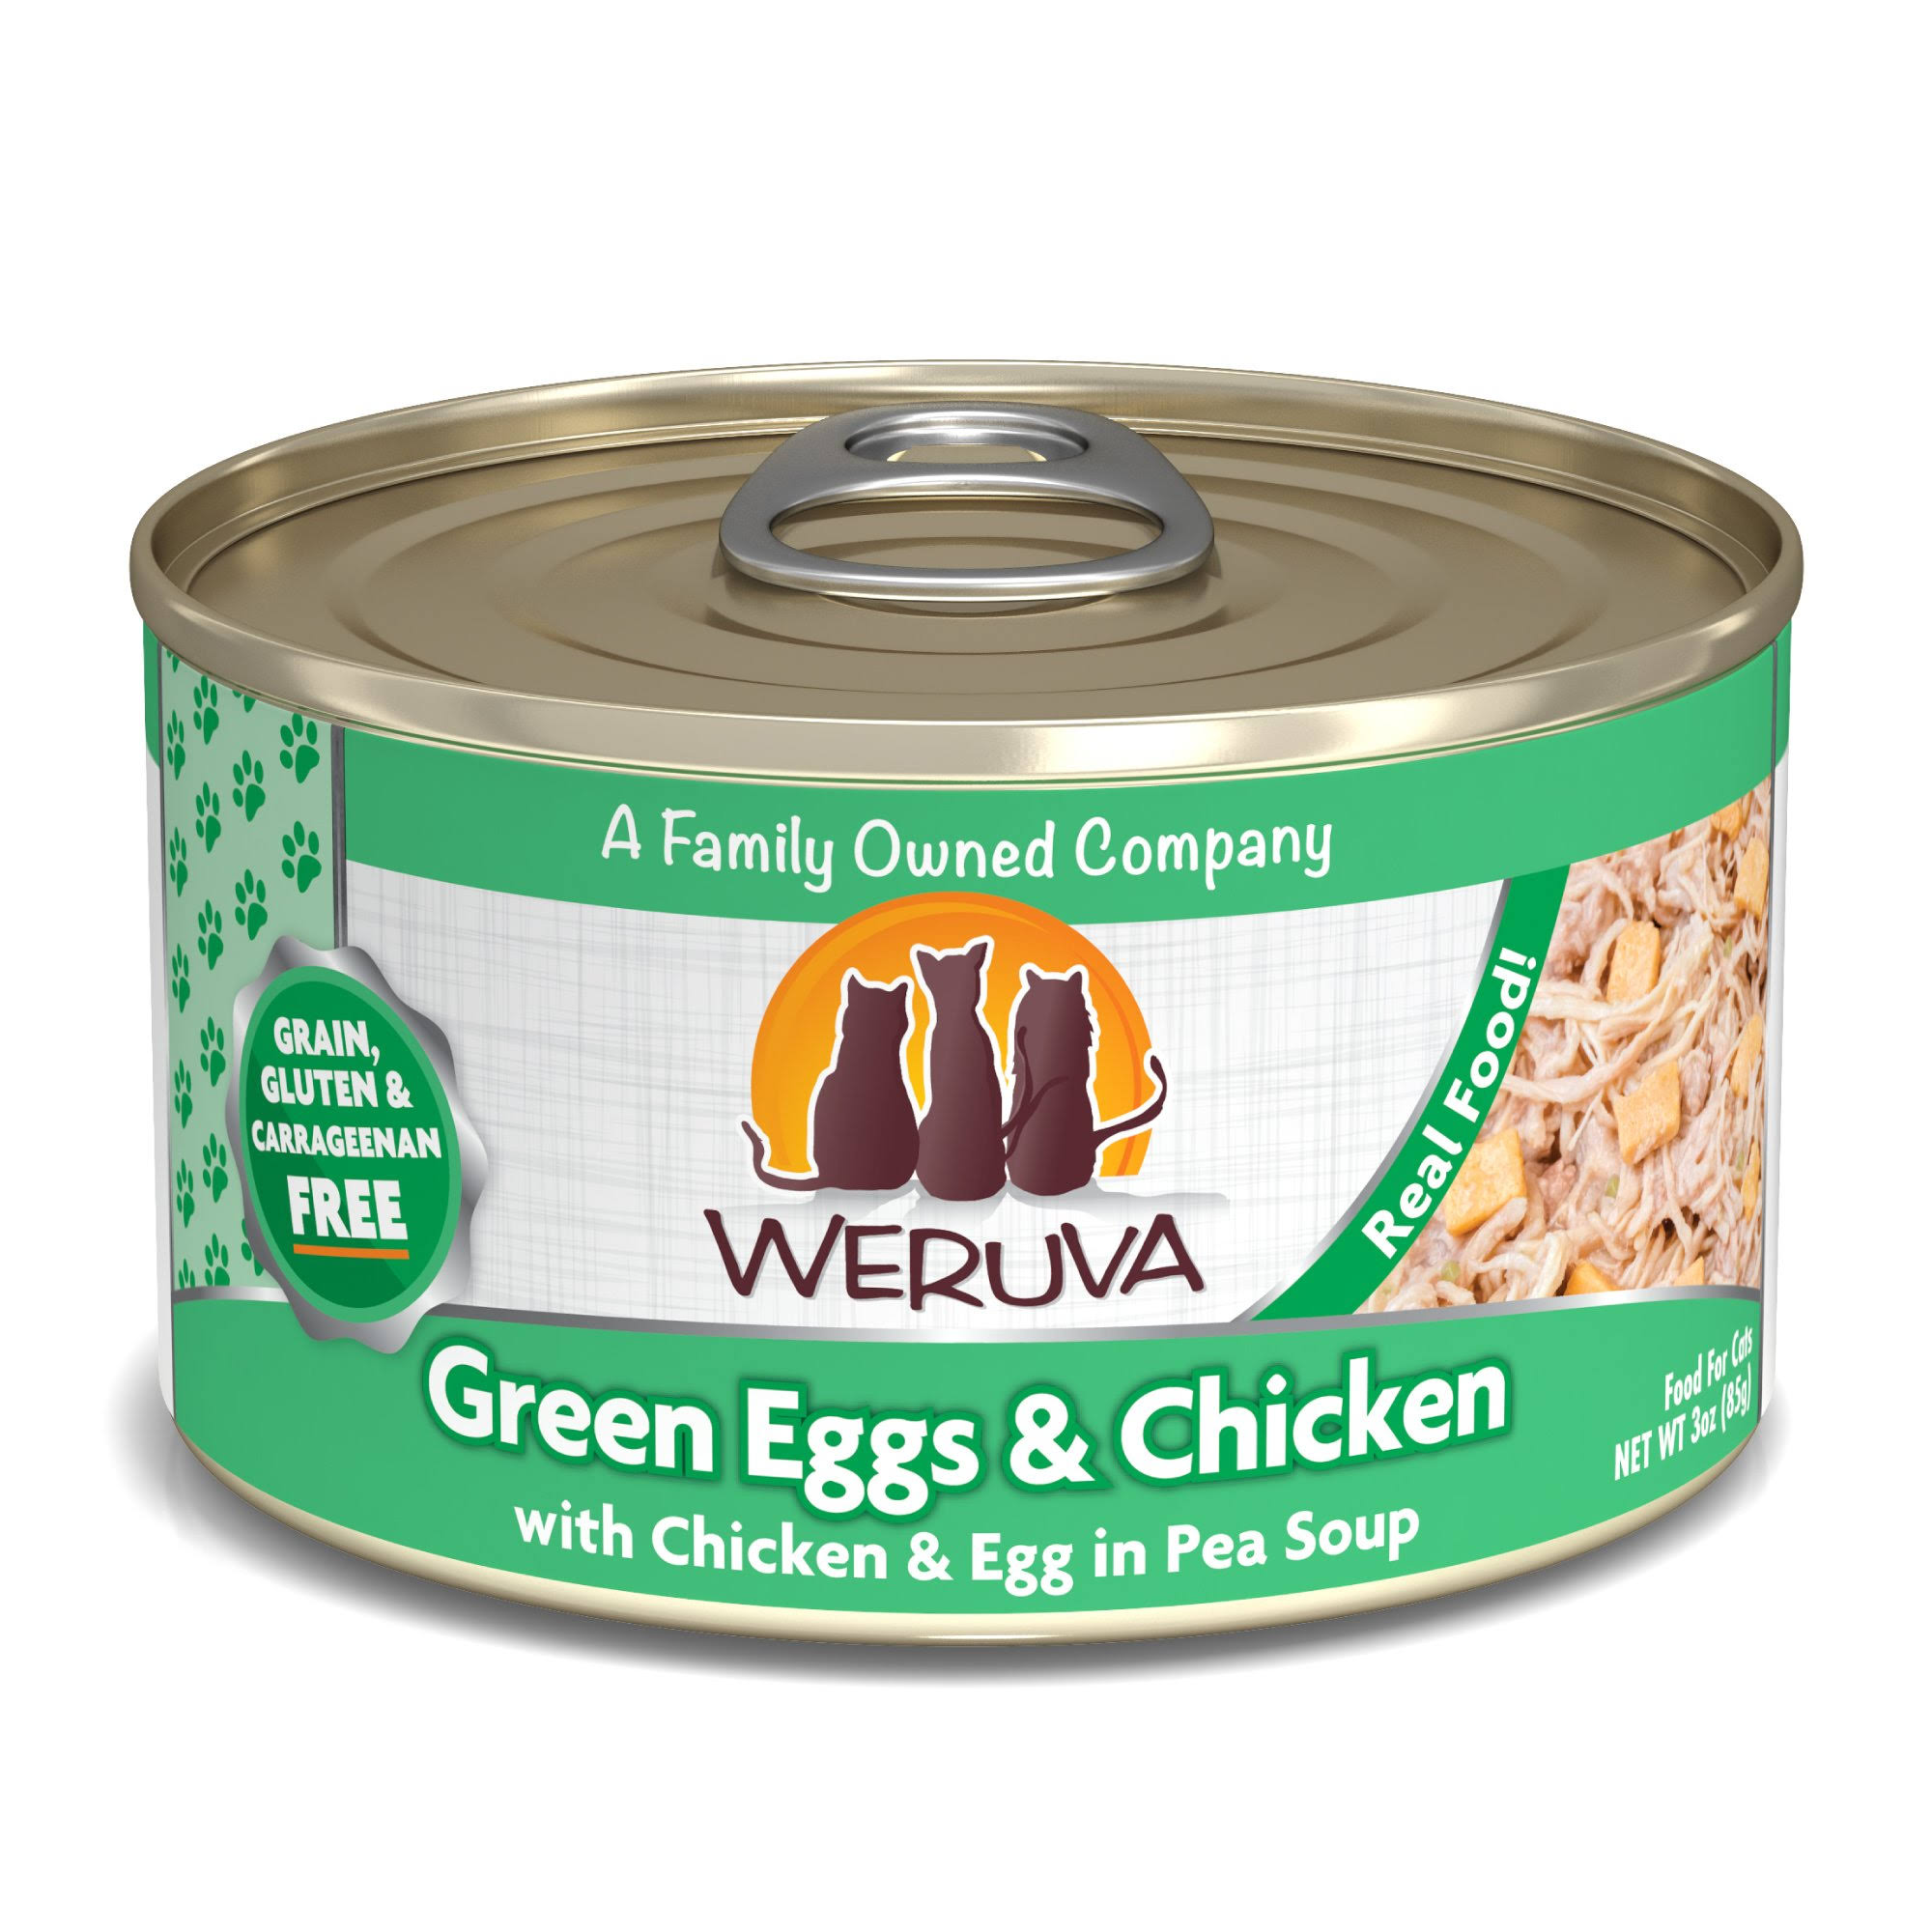 Weruva Canned Cat Food - Green Eggs and Chicken, 3oz